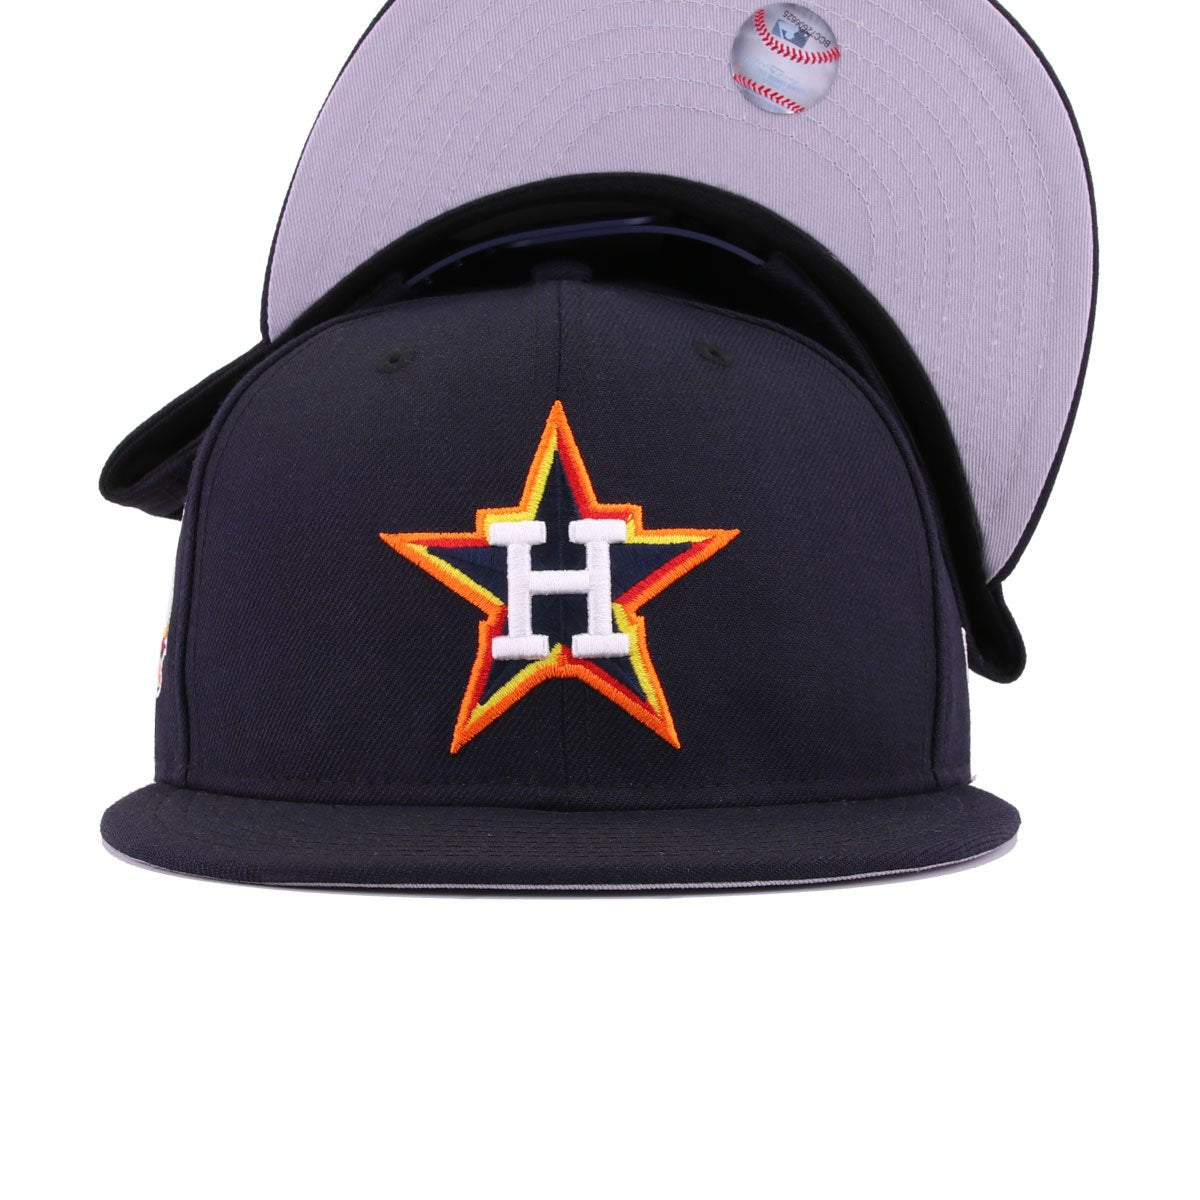 Houston Astros Navy Radiant Red Grilled Orange Ombre Gold 45th Anniversary New Era 9Fifty Snapback